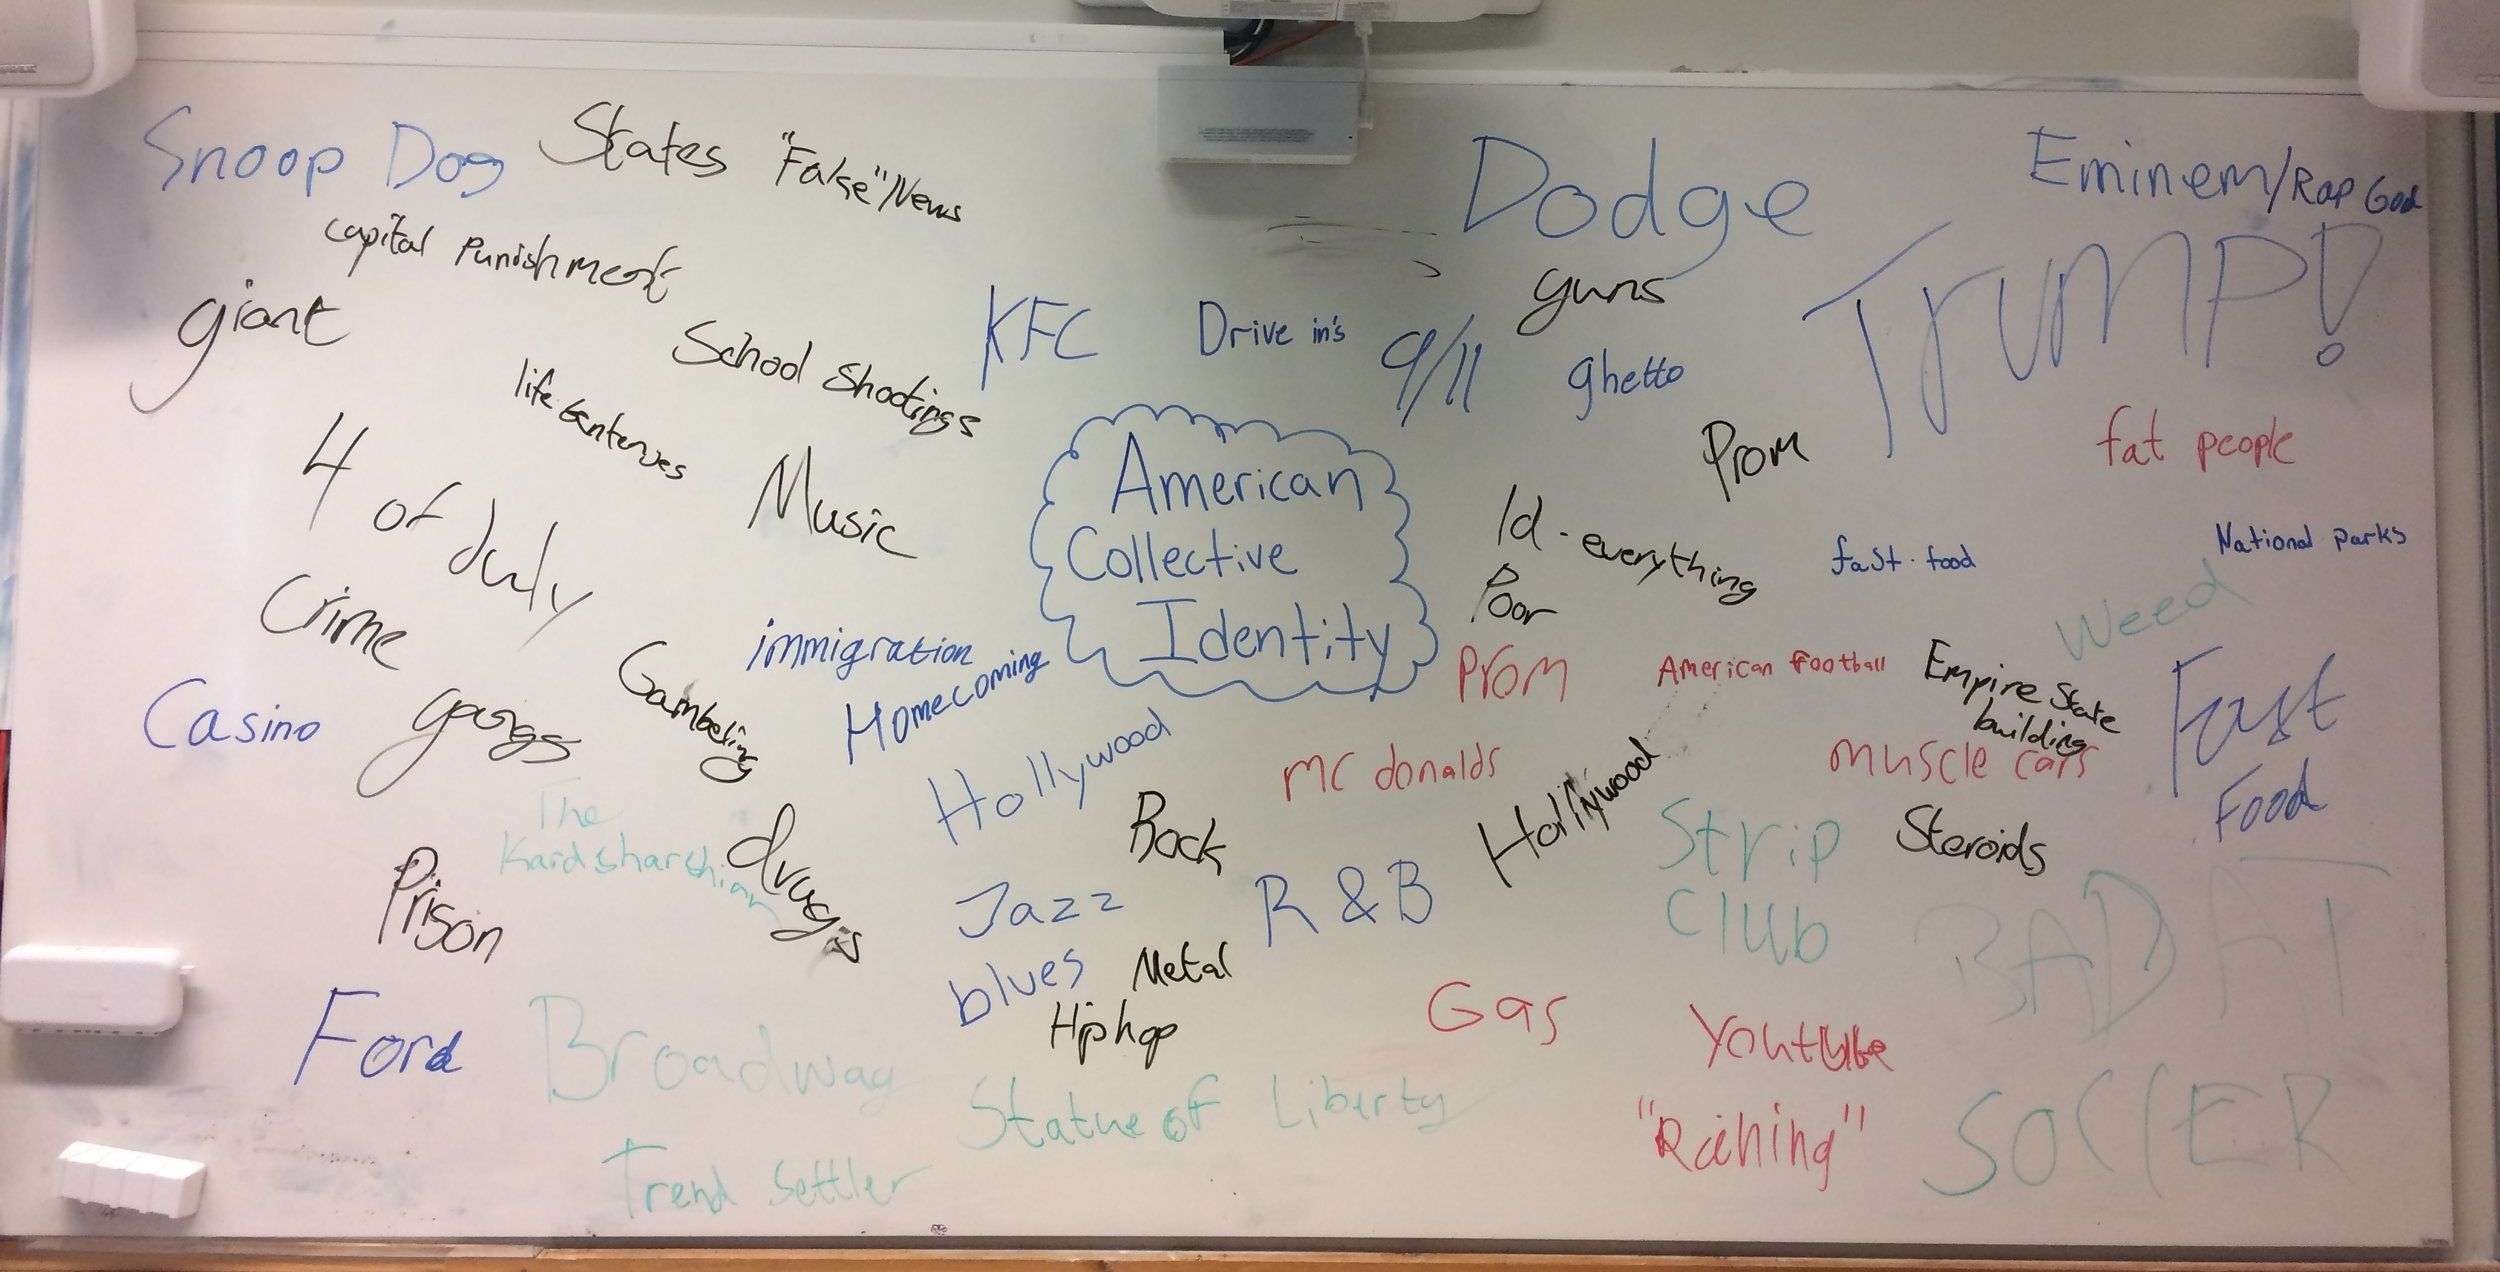 A group brainstorm about the perceived shared experiences/values/interests of Americans.